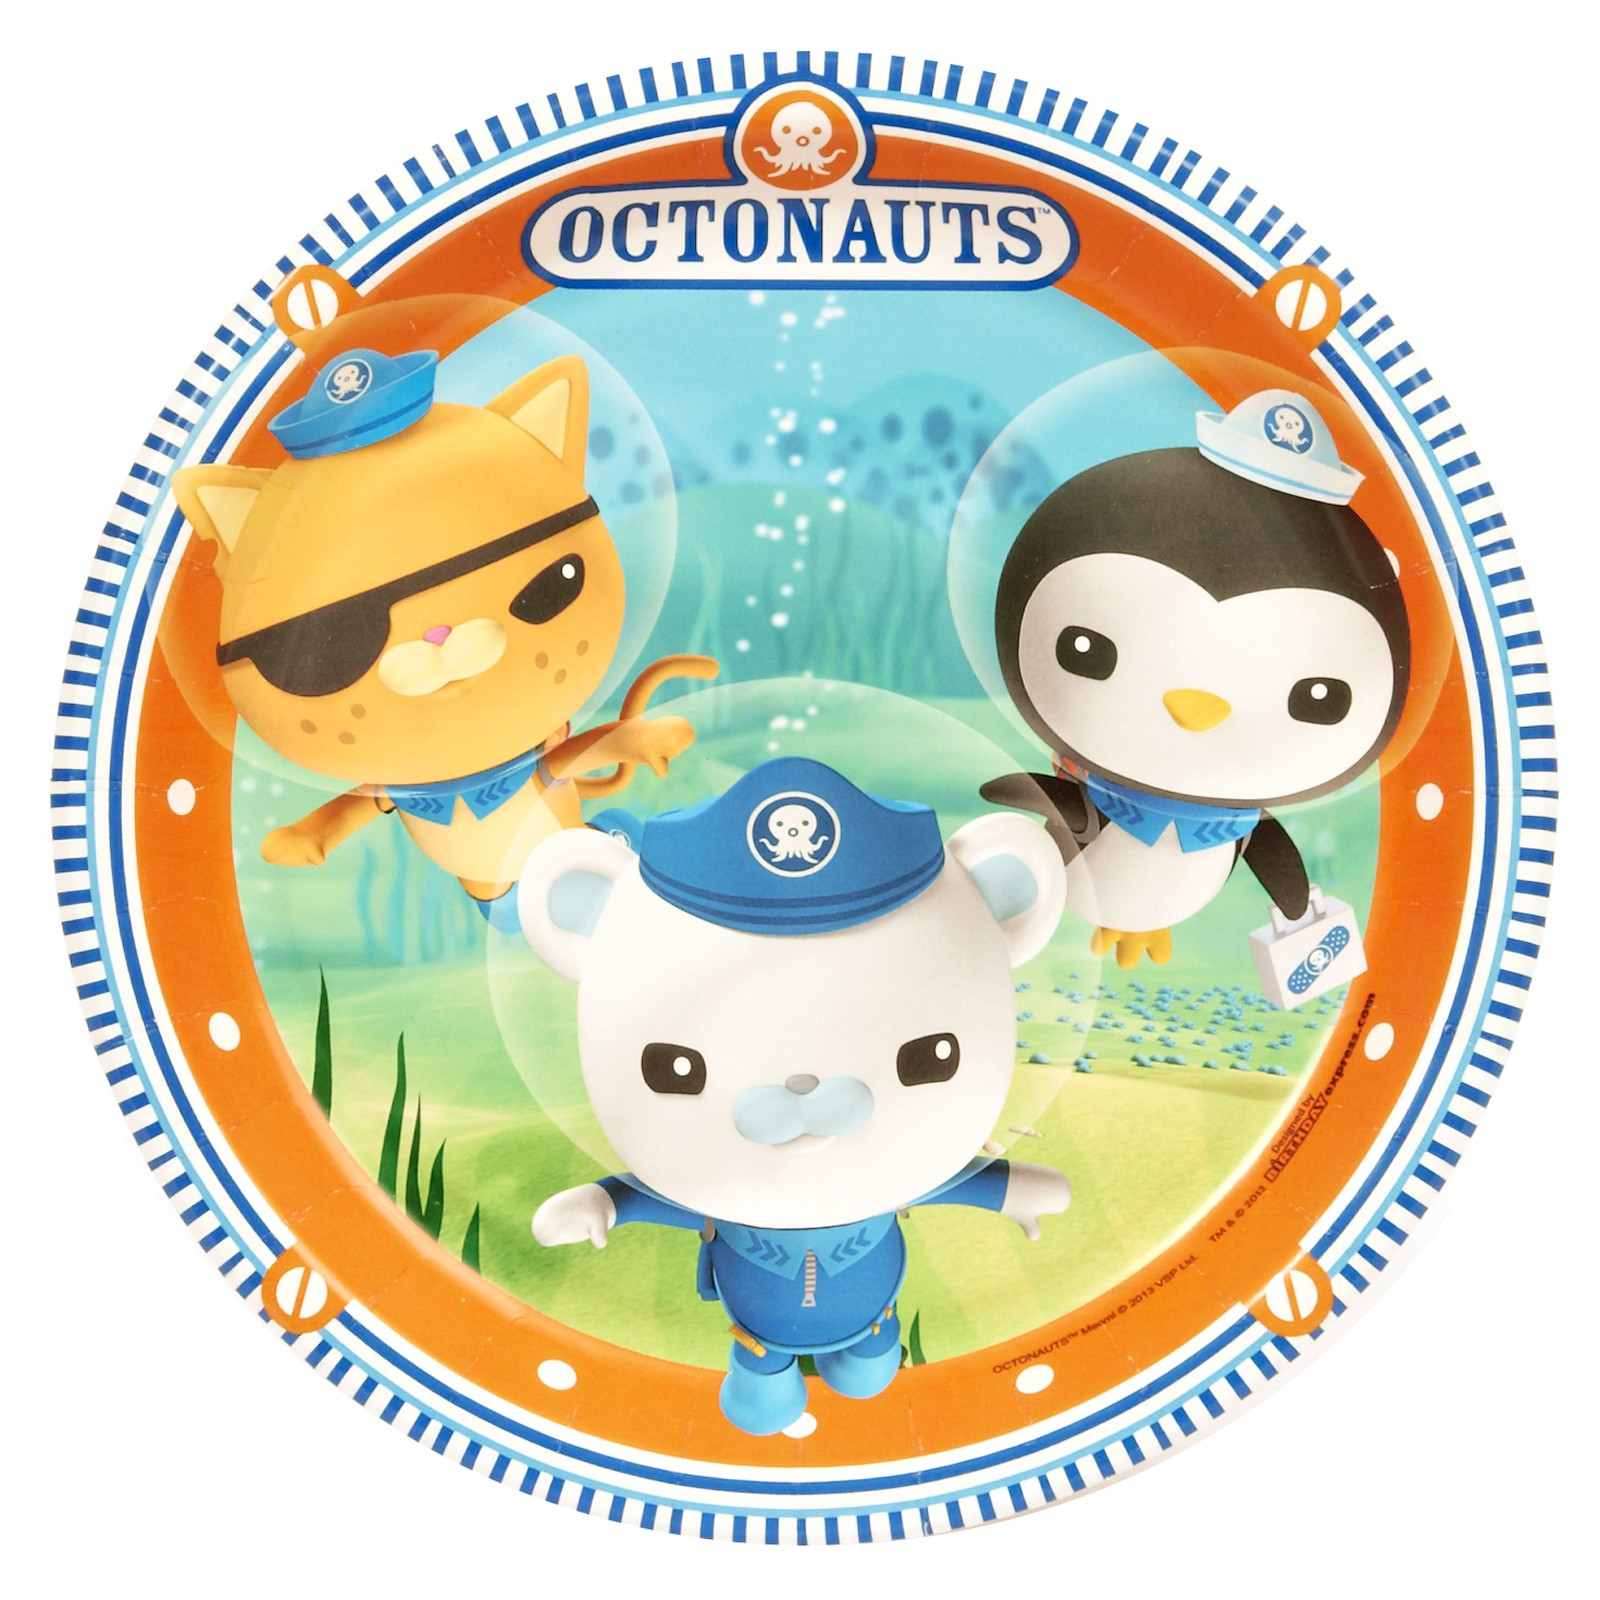 This Party Started Product Categories OCTONAUTS Party Supplies